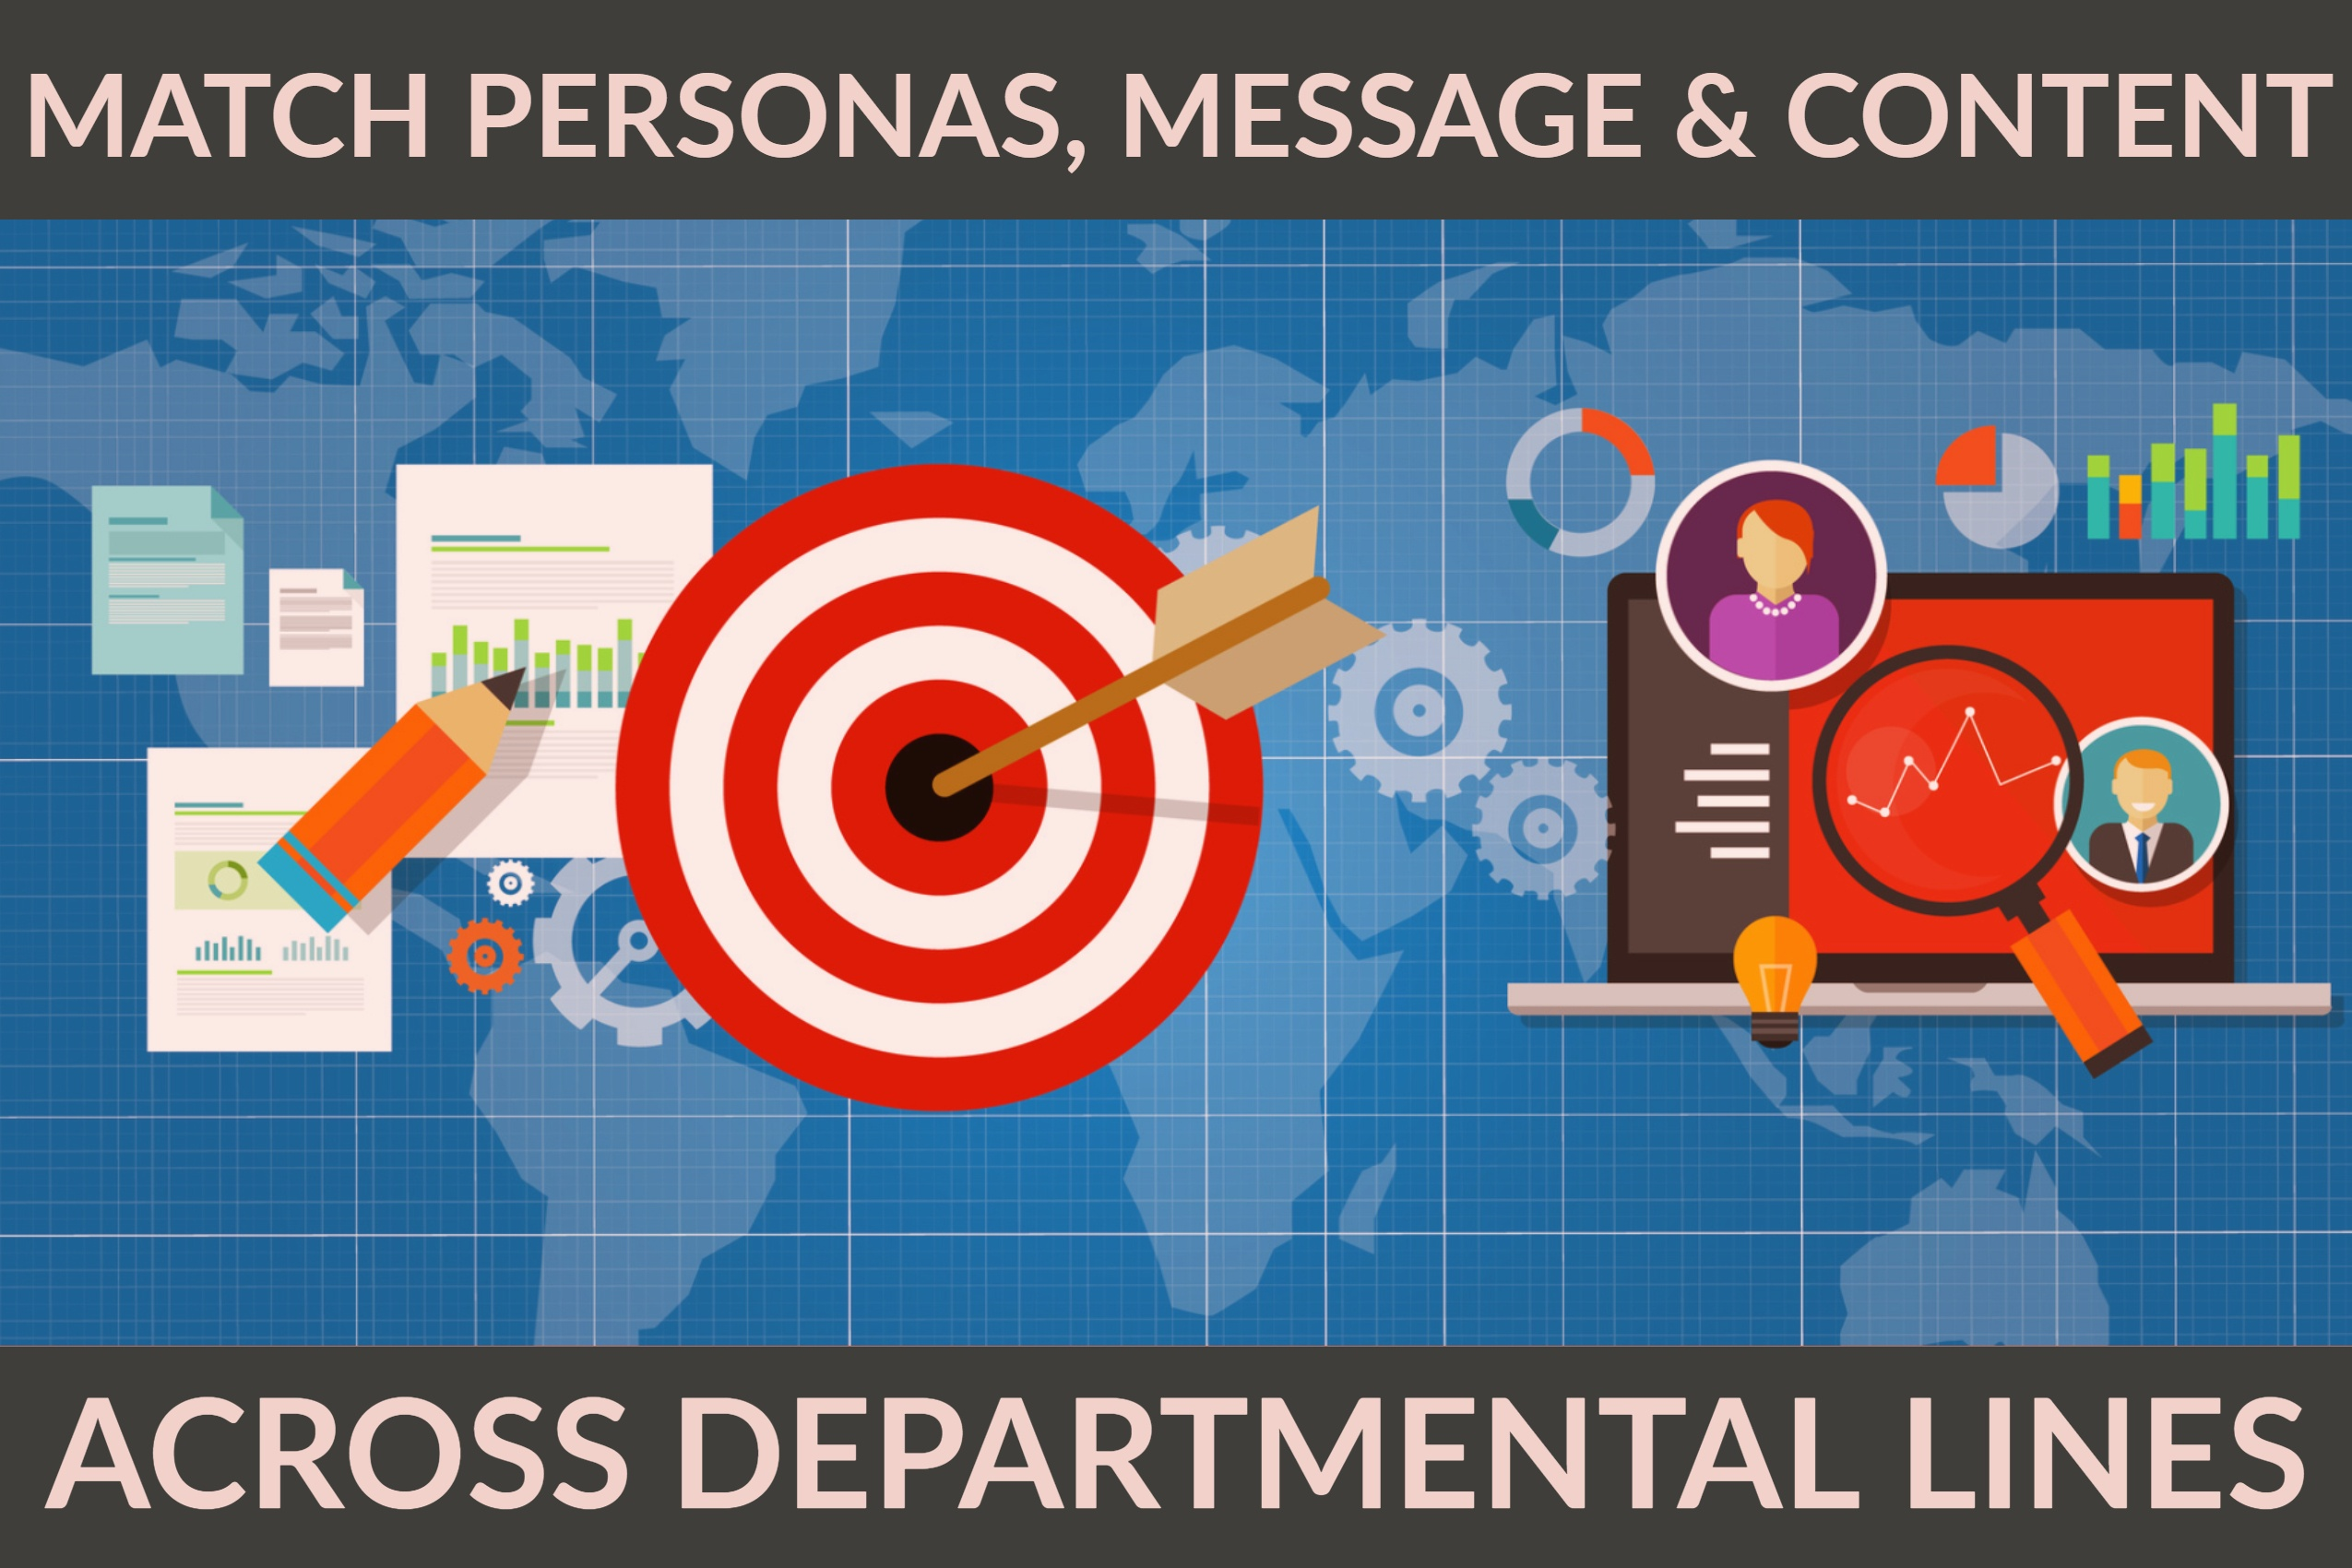 Match Personas, Message & Content Across Departmental Lines